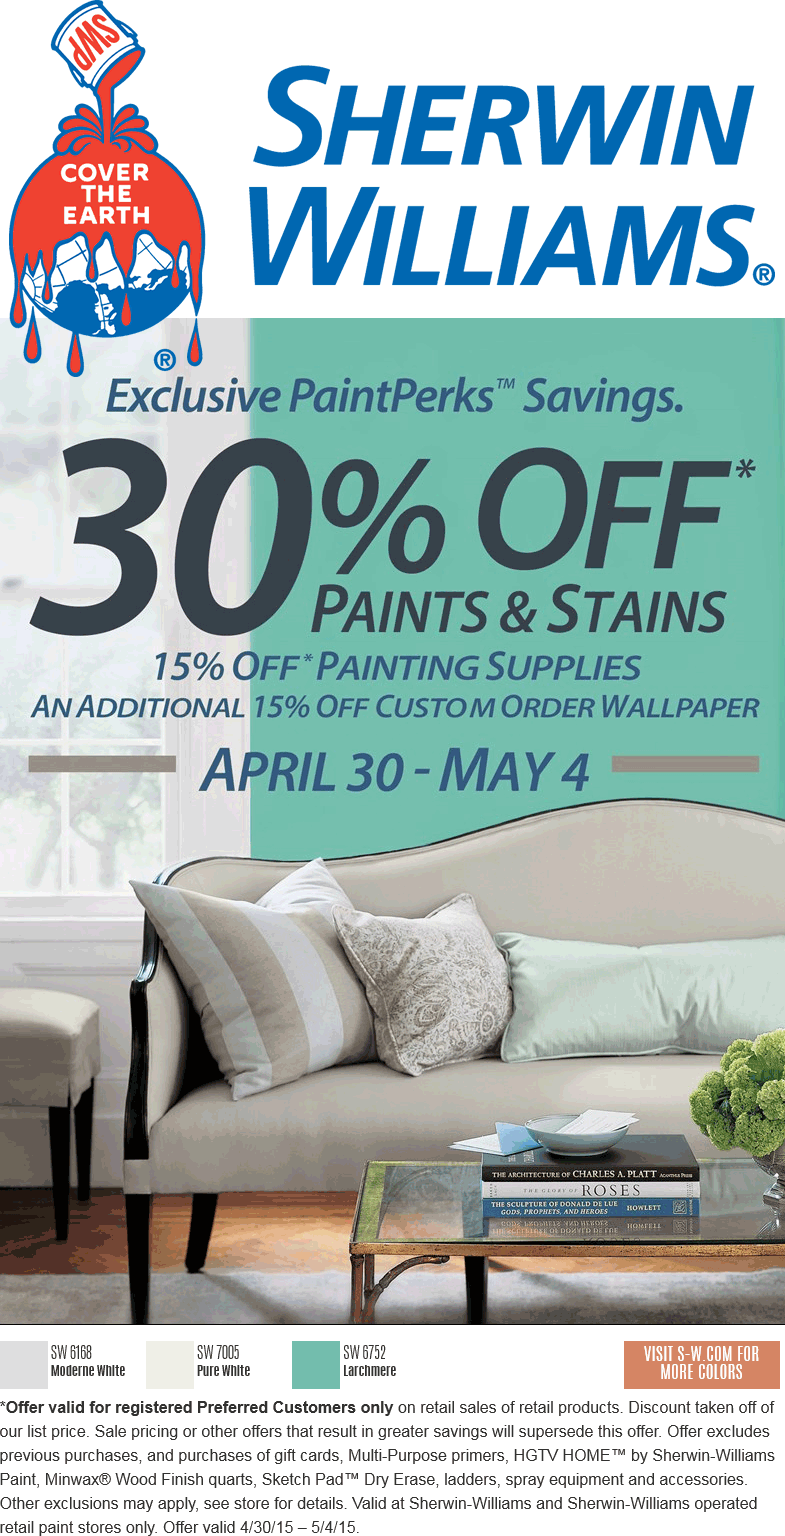 Sherwin Williams Coupon December 2016 30% off paint & stains at Sherwin Williams